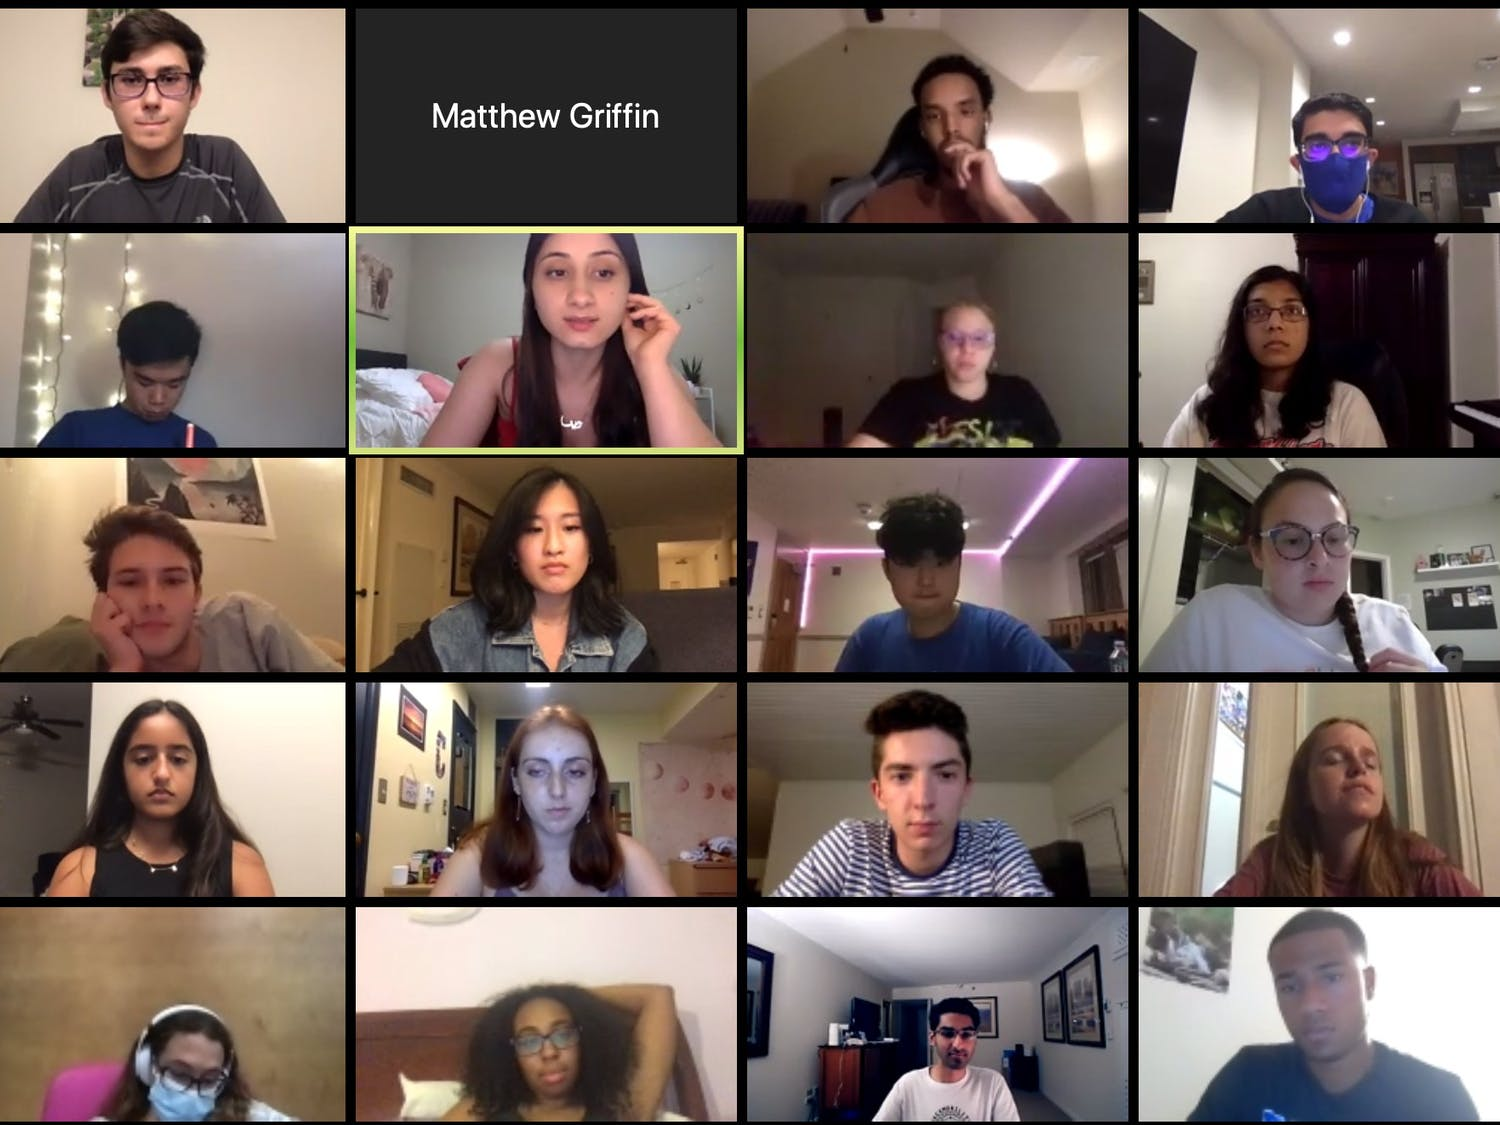 Wednesday's DSG Senate meeting featured updates from the executive branch, as well as appointments to DSG positions and Duke committees.